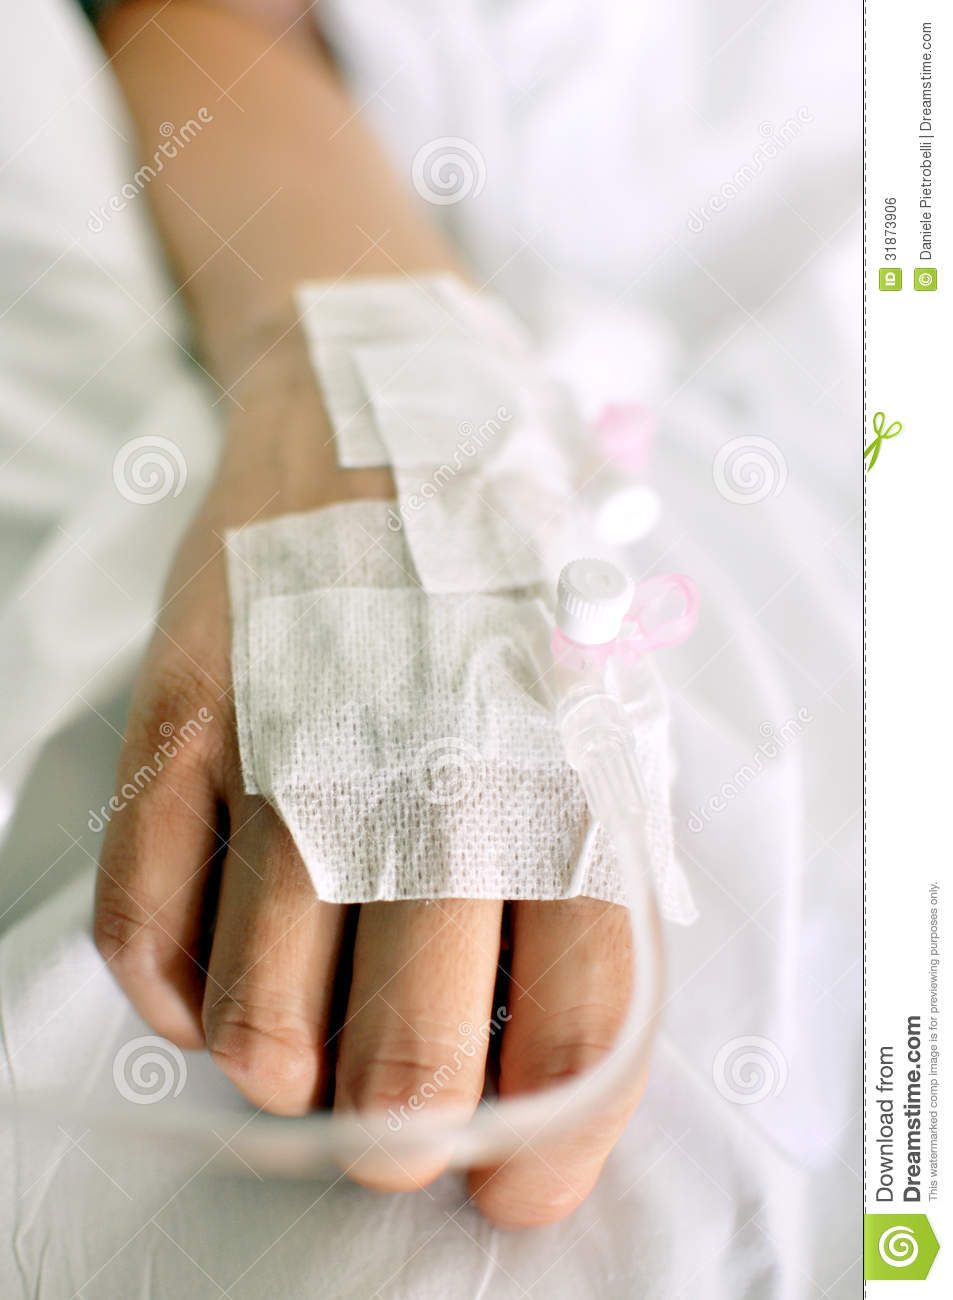 Hand With Drip In Hospital Royalty Free Stock Image - Image: 31873906